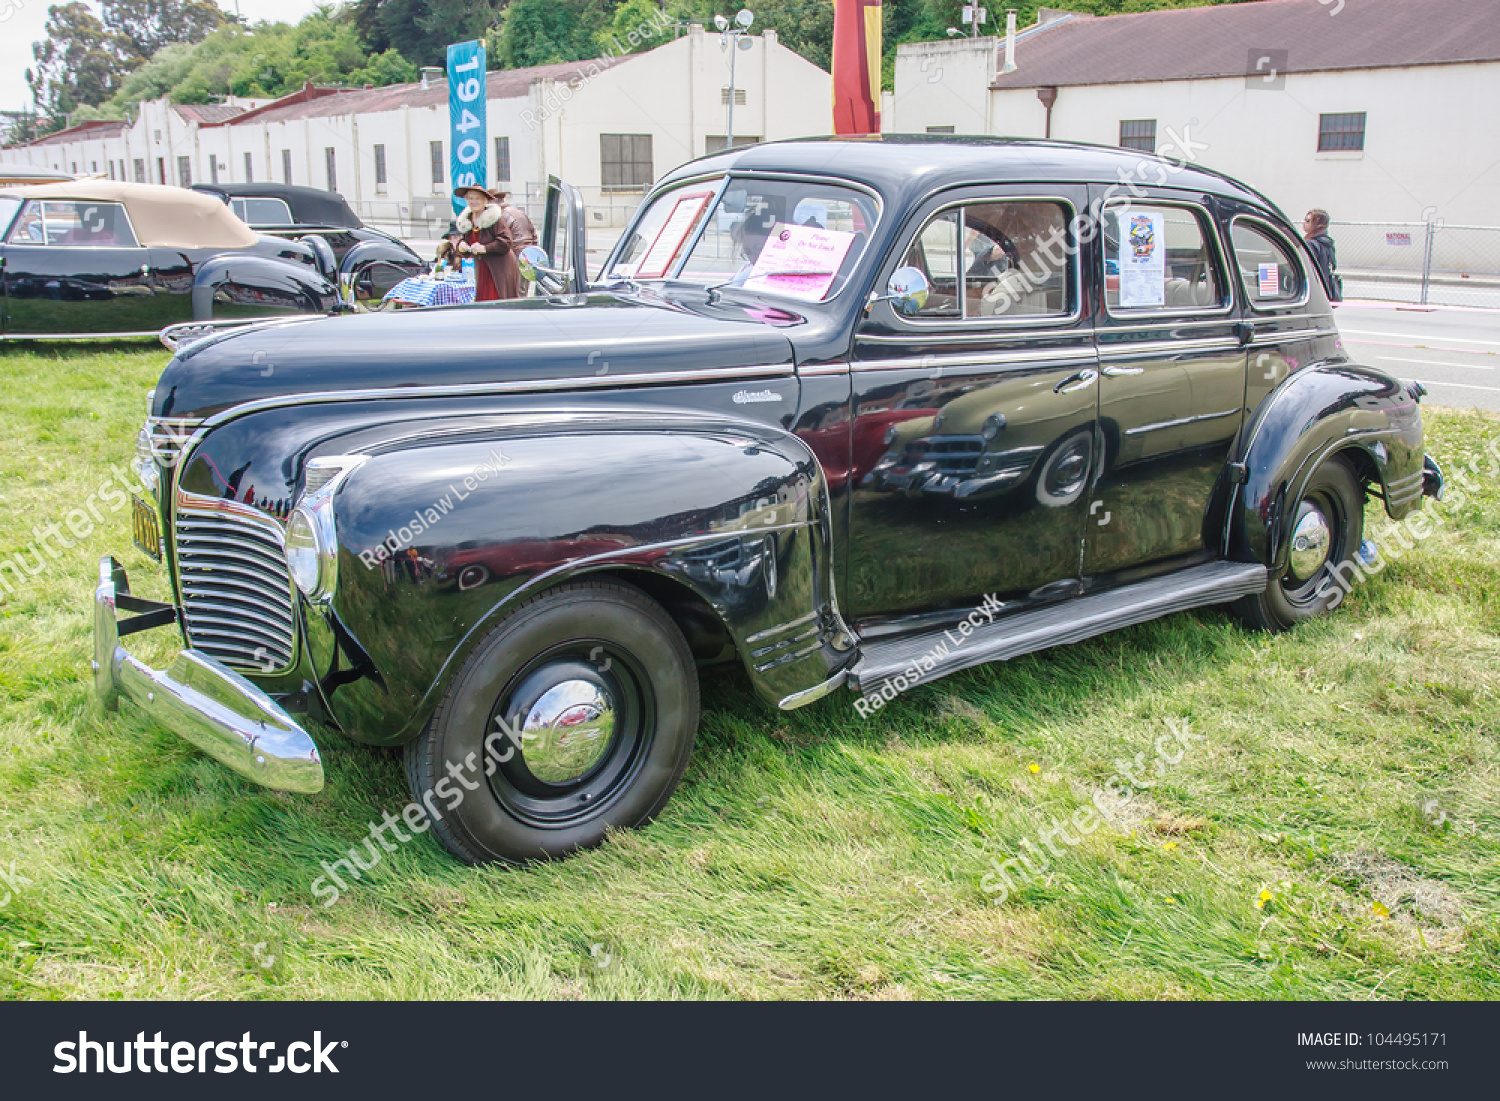 Trosa Sweden June 29 2017 Auburn 652 Y Year 1934 Light Green A 1941 Plymouth Special Deluxe 4 Door Car Brand That Was Manufactured Until 1937 In Indiana United States Ez Canvas